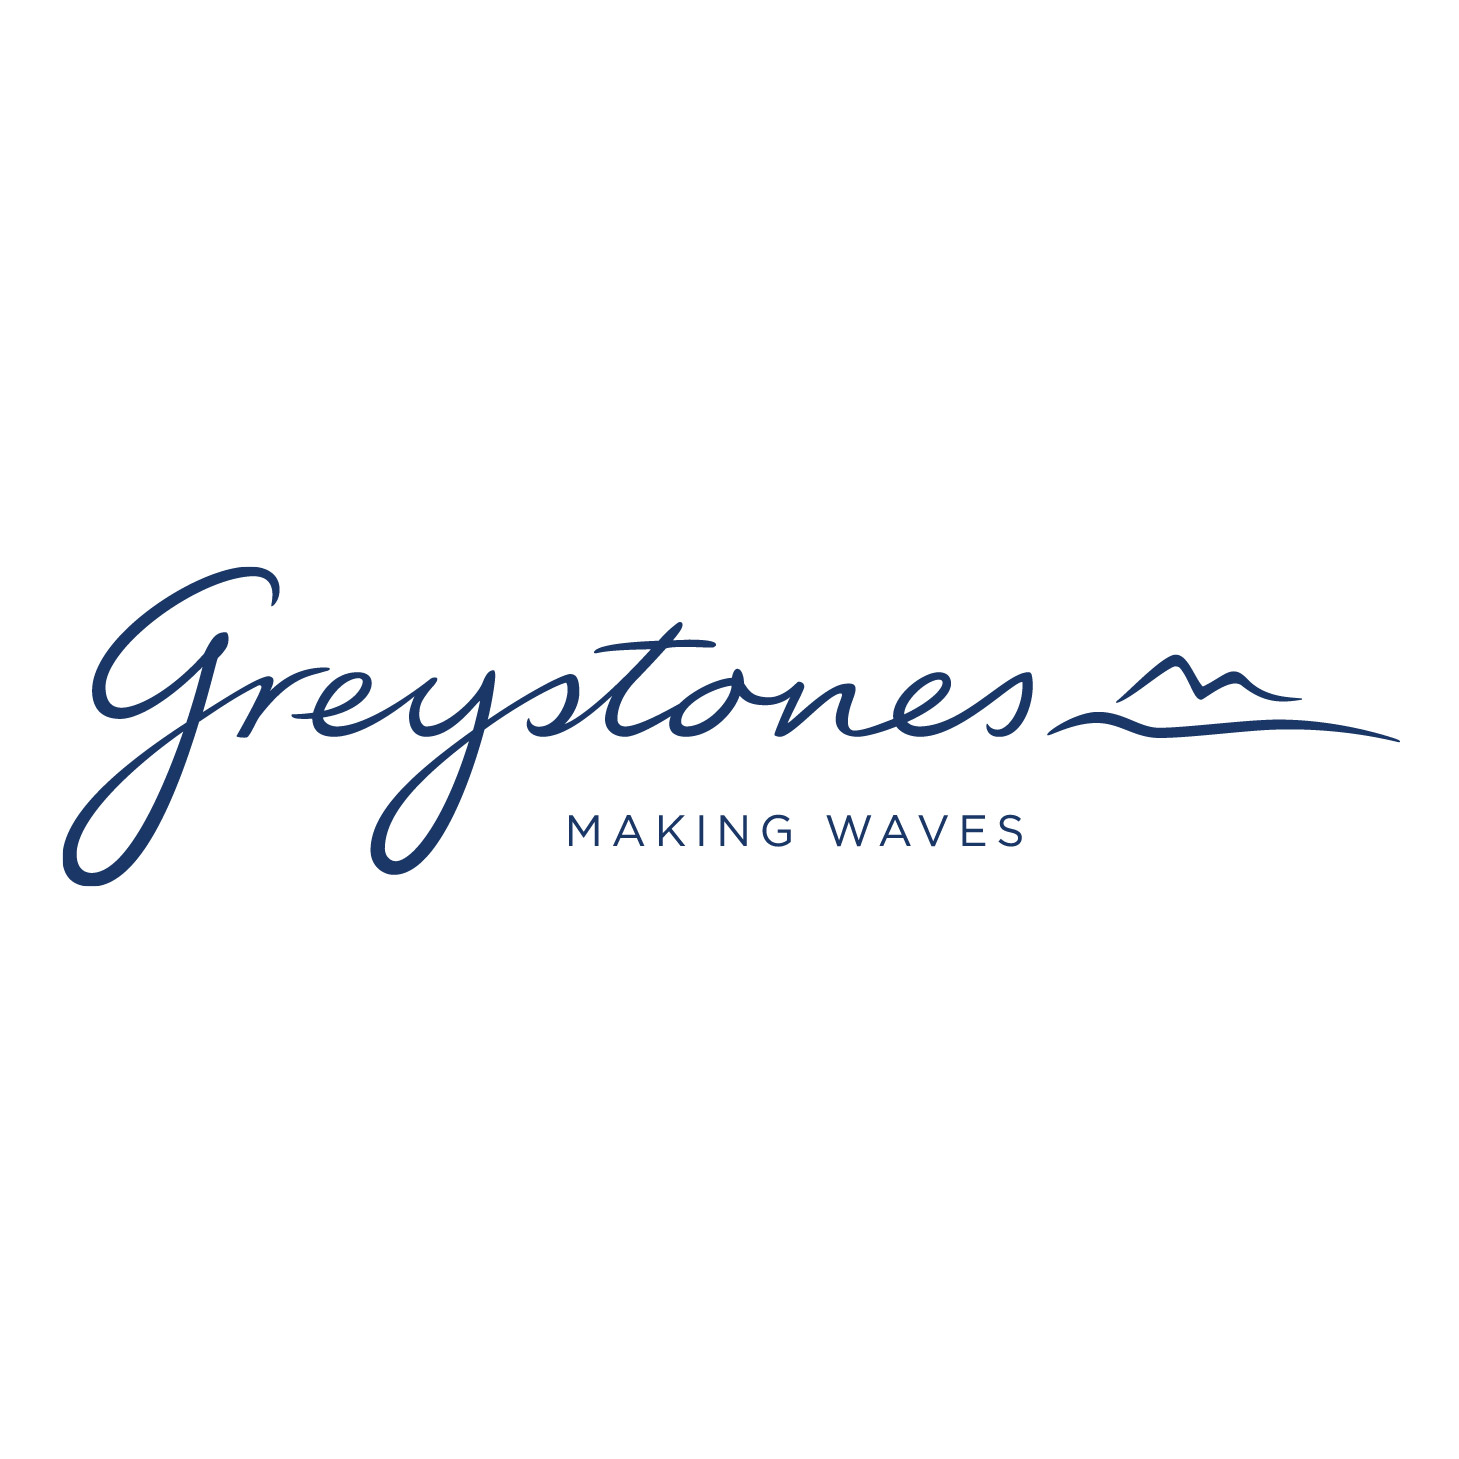 Journal - Greystones Archaeological & Historical Society